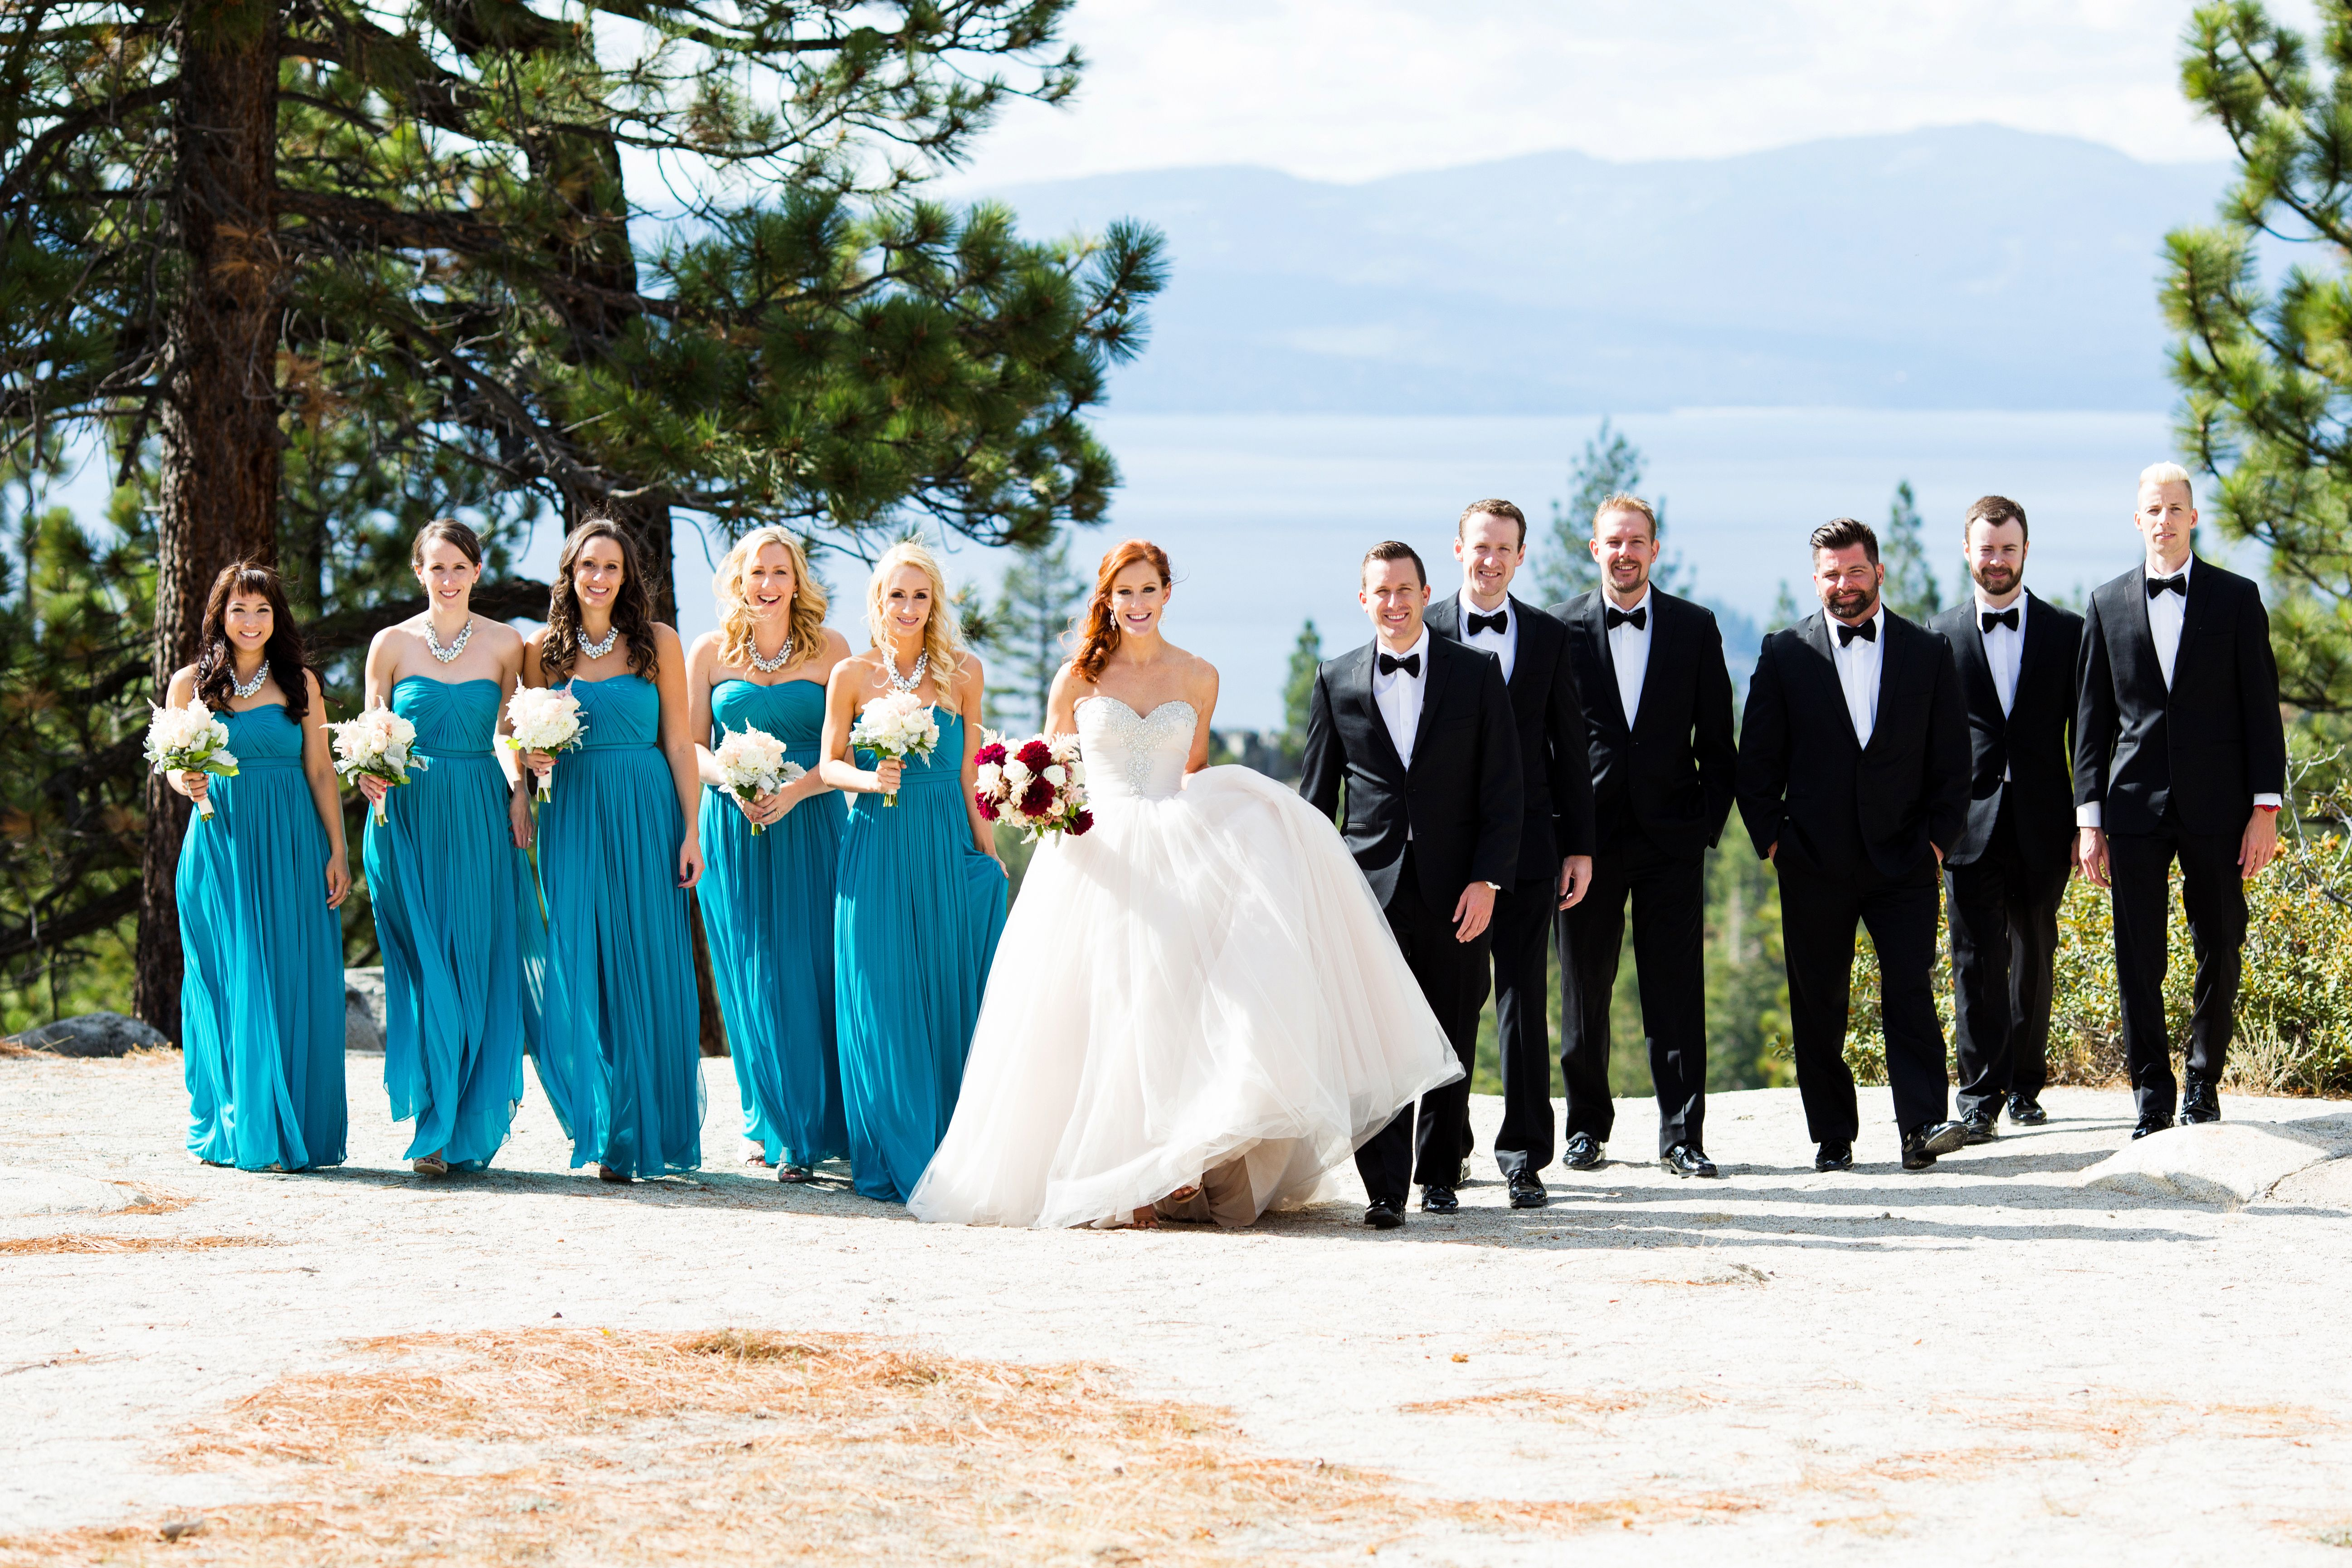 Get Married At A Top Mountain Wedding Venue